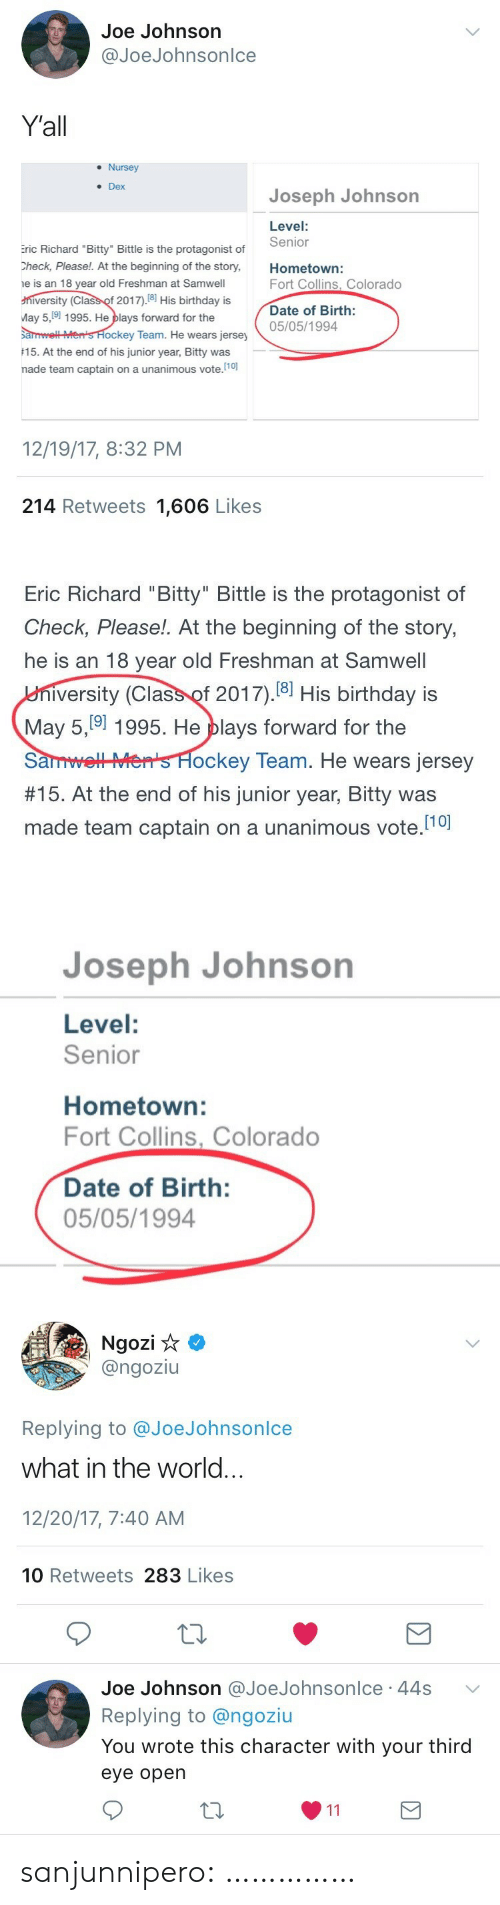 """Birthday, Hockey, and Target: Joe Johnson  @JoeJohnsonlce  Yall  . Nursey  Dex  Joseph Johnson  Level:  Senior  ric Richard """"Bitty"""" Bittle is the protagonist of  Check, Please!. At the beginning of the story,Hometown:  e is an 18 year old Freshman at Samwell  niversity (Class of 2017).18 His birthday is  May 5,9 1995. He plays forward for the  arwell Men's Hockey Team. He we  15. At the end of his junior year, Bitty was  nade team captain on a unanimous vote.10)  Fort Collins, Colorado  Date of Birth:  05/05/1994  ars jersey  12/19/17, 8:32 PM  214 Retweets 1,606 Likes   Eric Richard """"Bitty"""" Bittle is the protagonist of  Check, Please!. At the beginning of the story,  he is an 18 year old Freshman at Samwell  iversity (Class of 2017).18] His birthday is  May 5, 9] 1995. He plays forward for the  SanmLHS H  #15. At the end of his junior year, Bitty was  made team captain on a unanimous vote.10  ockey Team. He wears jersey   Joseph Johnson  Level:  Senior  Hometown:  Fort Collins, Colorado  Date of Birth:  05/05/1994   Ngozi  @ngoziu  Replying to @JoeJohnsonlce  what in the world.  12/20/17, 7:40 AM  10 Retweets 283 Likes  Joe Johnson @JoeJohnsonlce 44s  Replying to @ngoziu  You wrote this character with your third  eye opern sanjunnipero: ……………"""